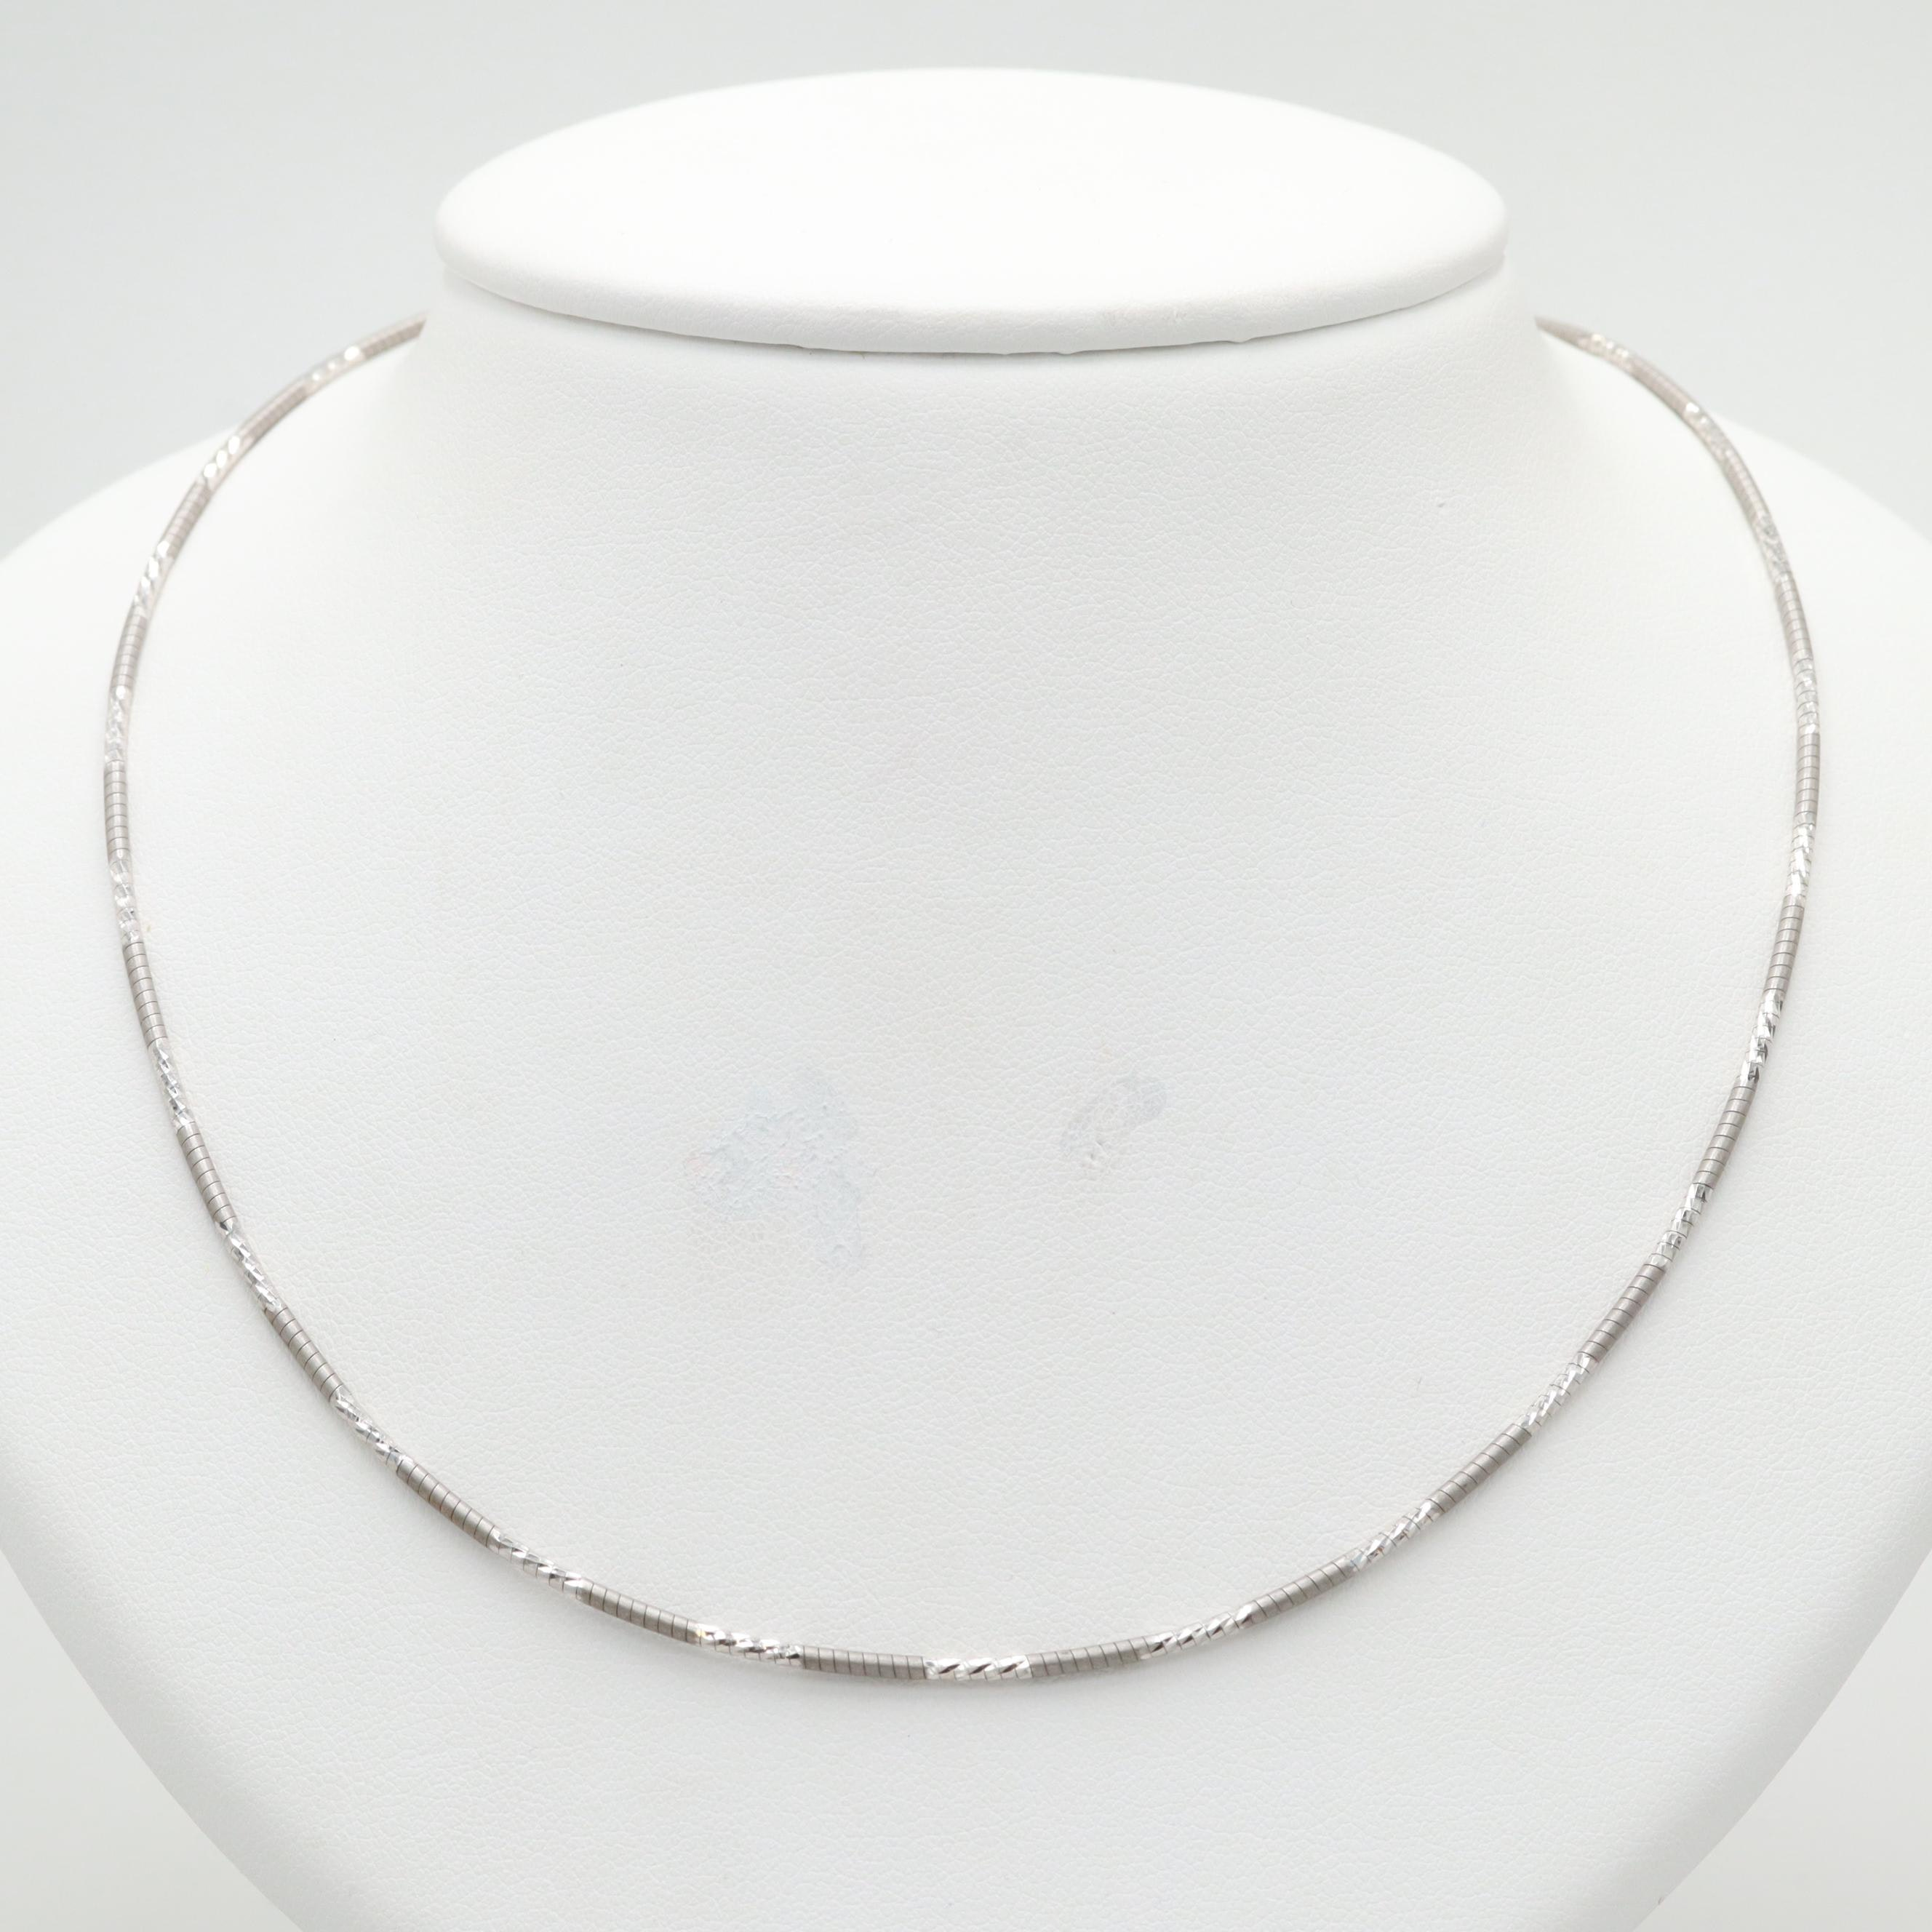 Sterling Silver Necklace with Diamond Cut Accents